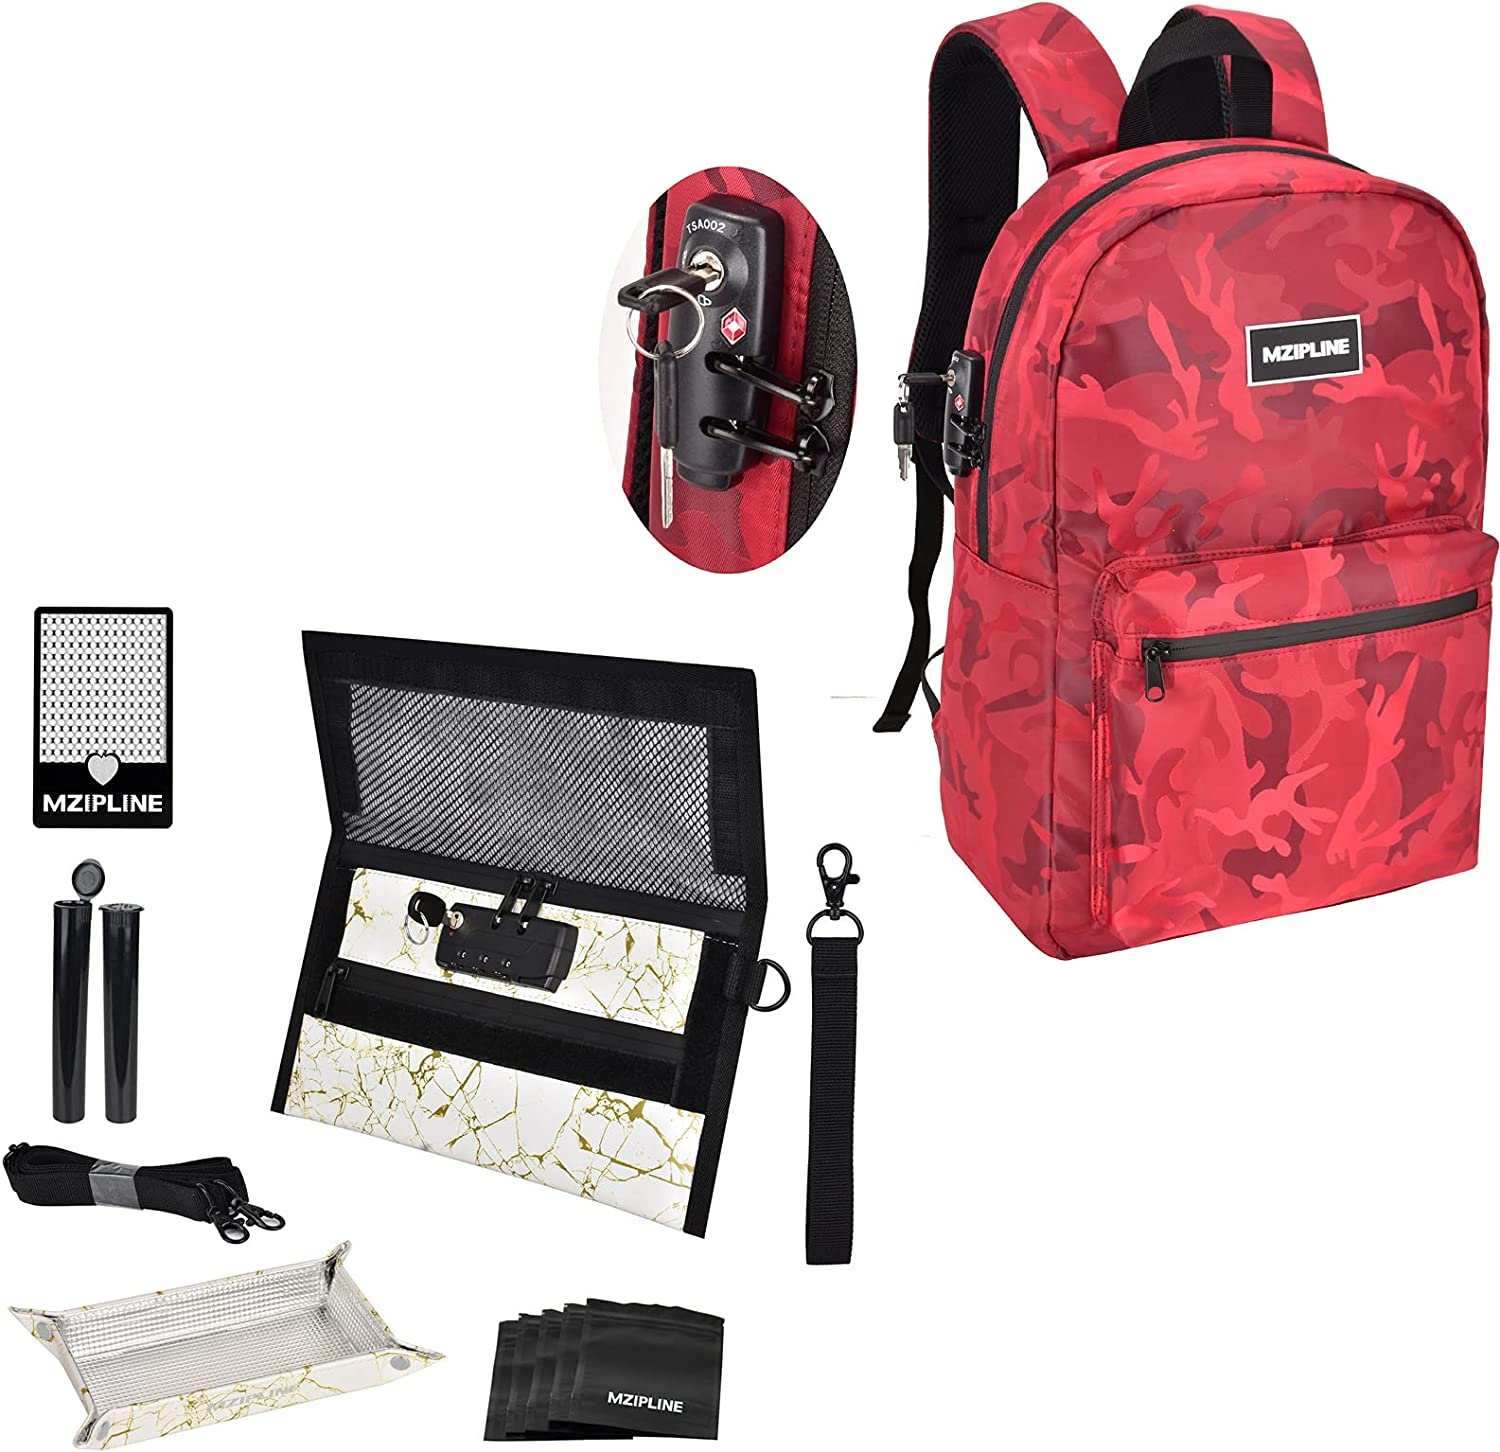 Mzipline Large Smell Proof Backpack Bag Topics on TV 5% OFF Pouch Bundle with